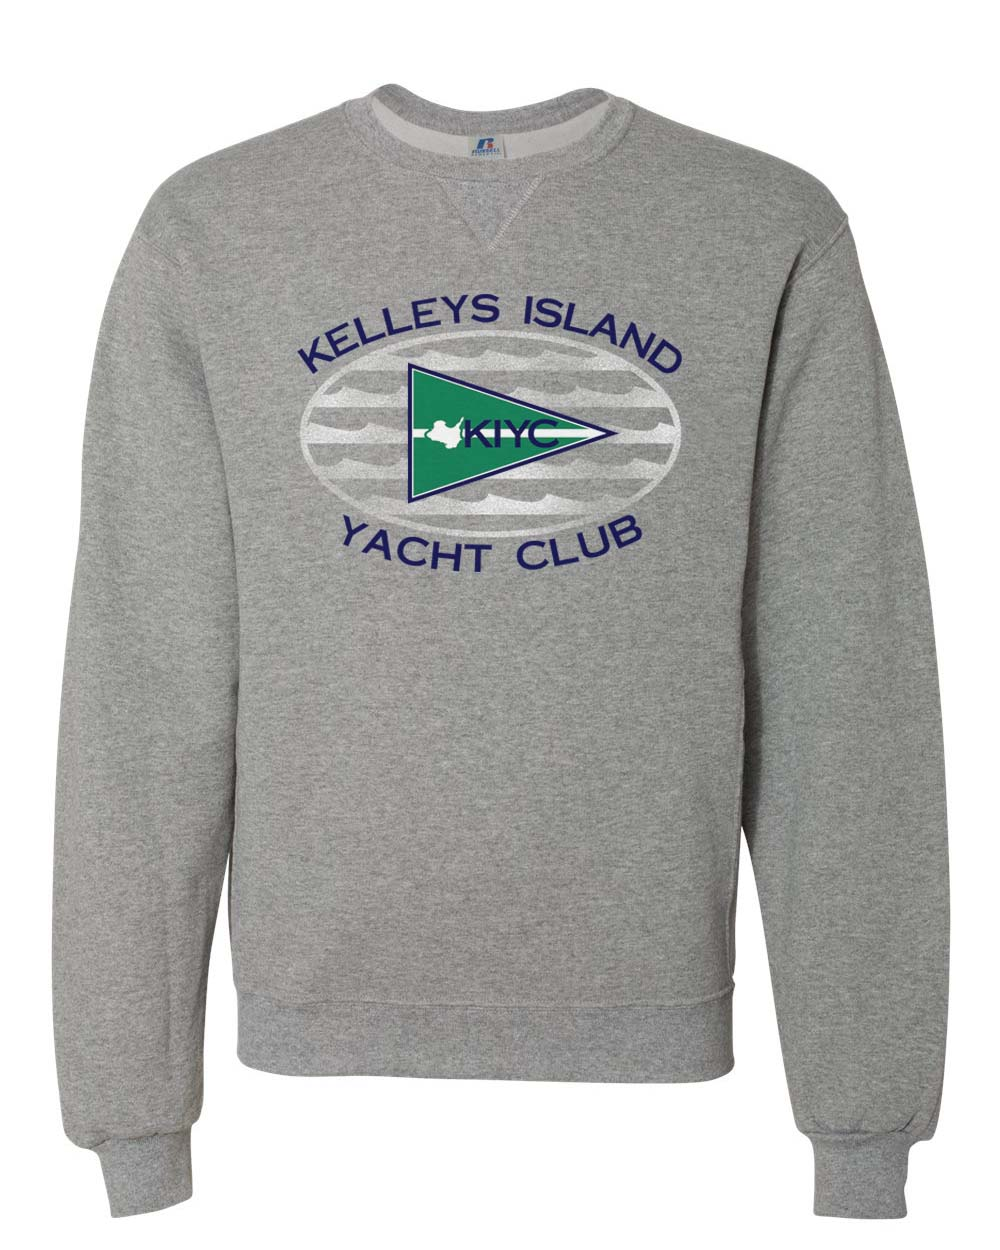 Old School Flagship Crew Sweatshirt